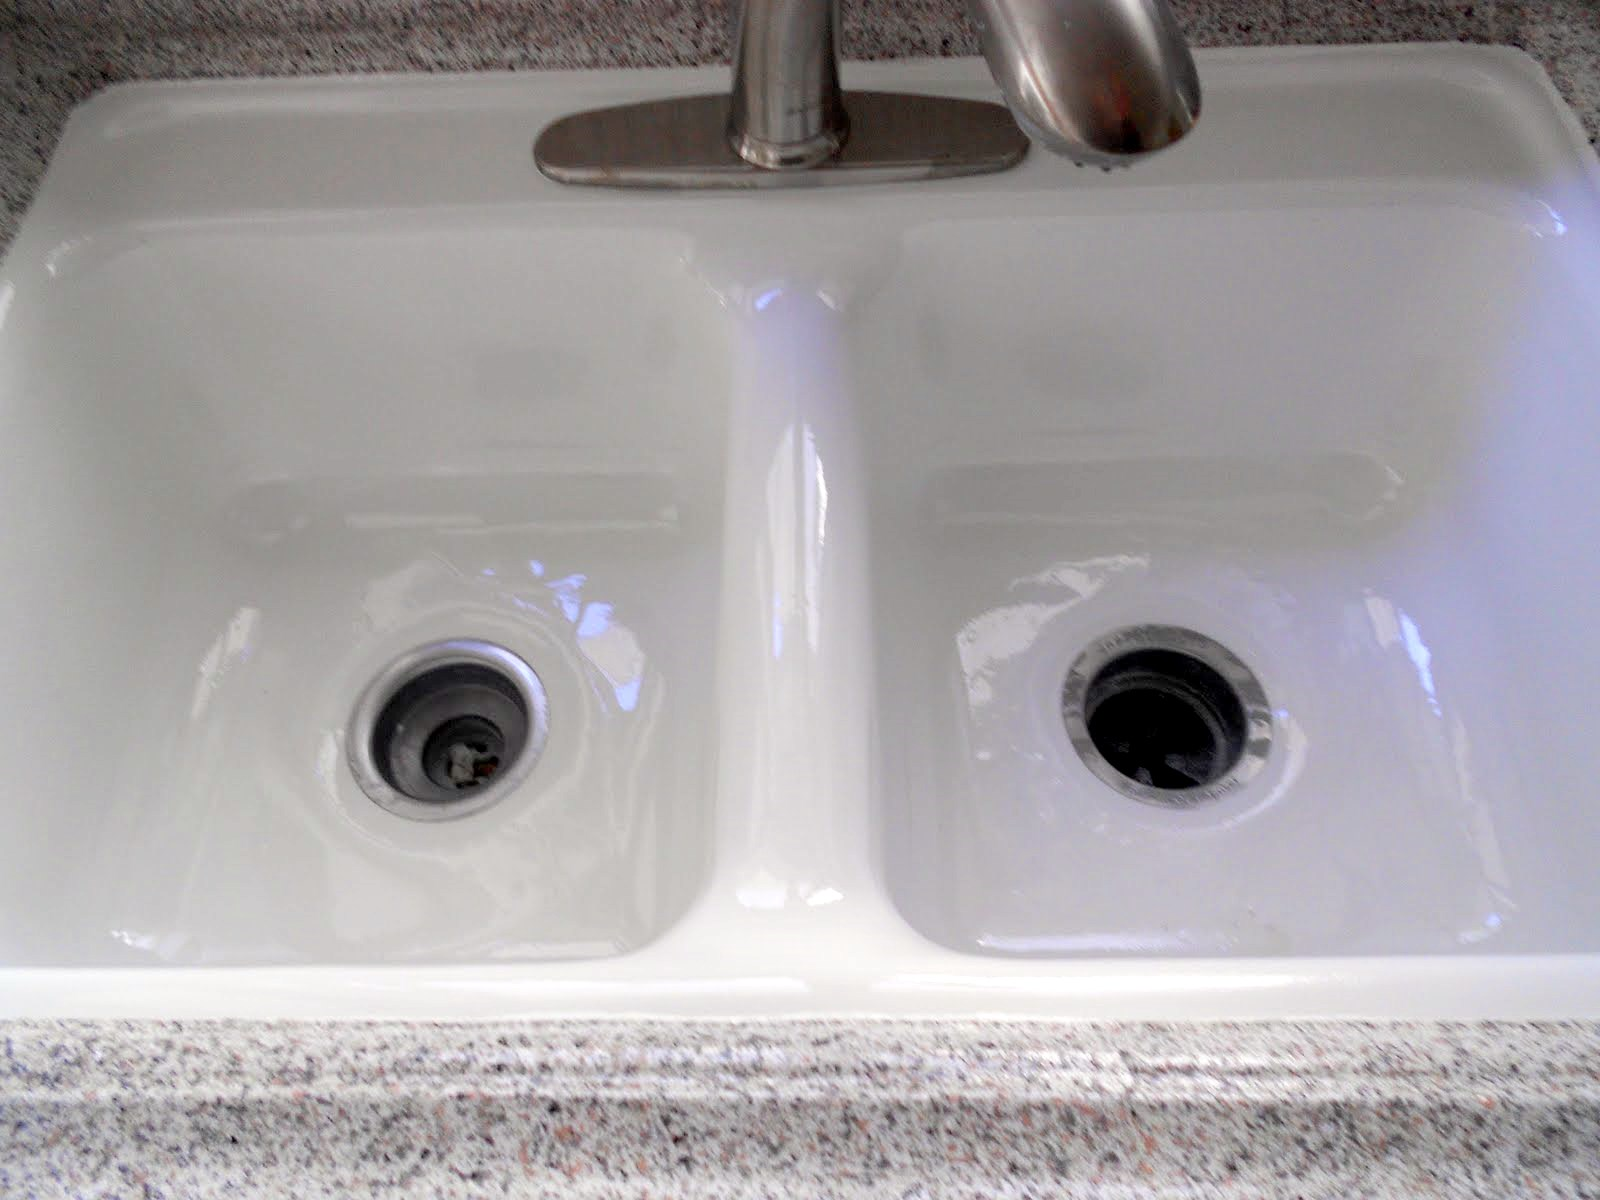 ... Kitchen Sink   After Reglazing, Refinishing Images